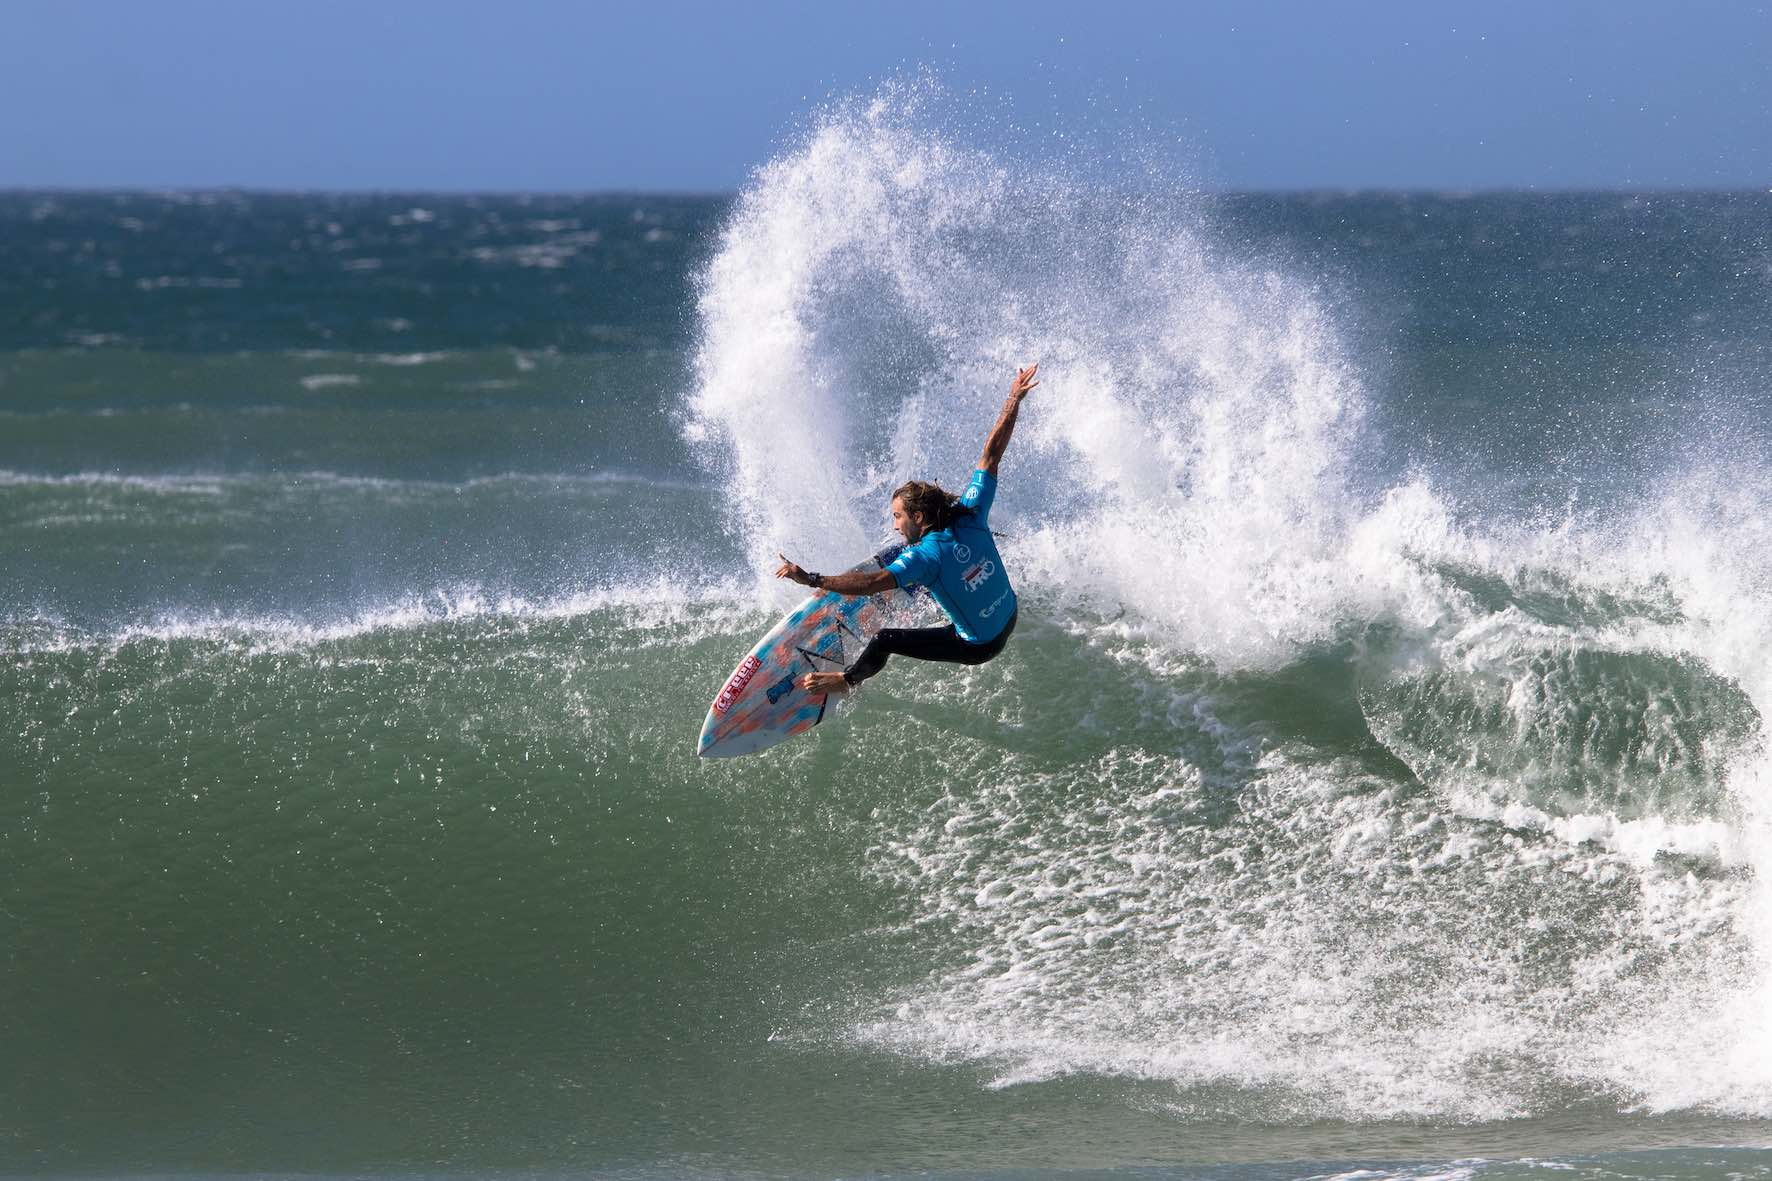 Chad Du Toit surfing in the Nelson Mandela Surf Pro 2019